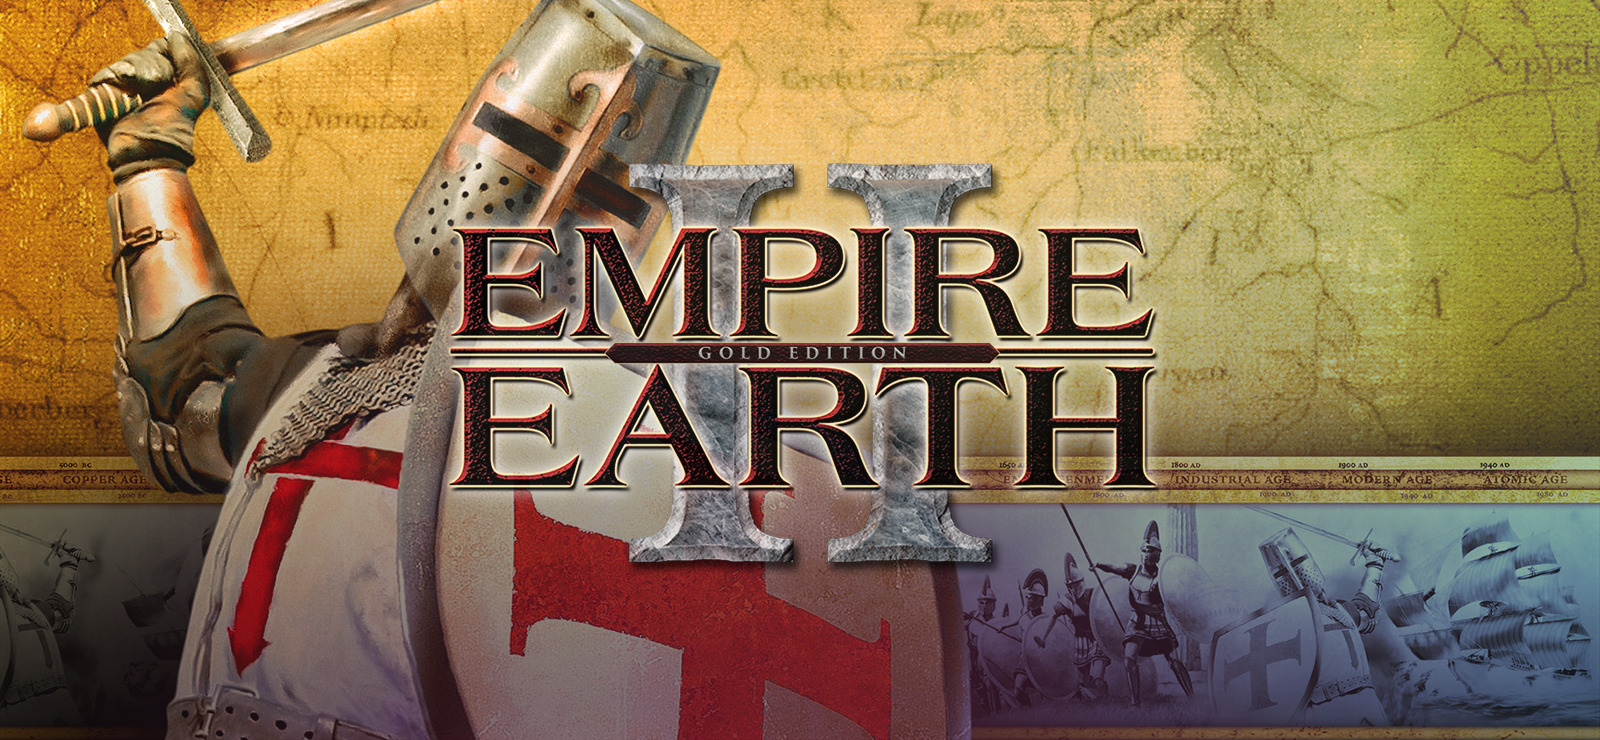 Download empire earth 2 high compressed imagelost.